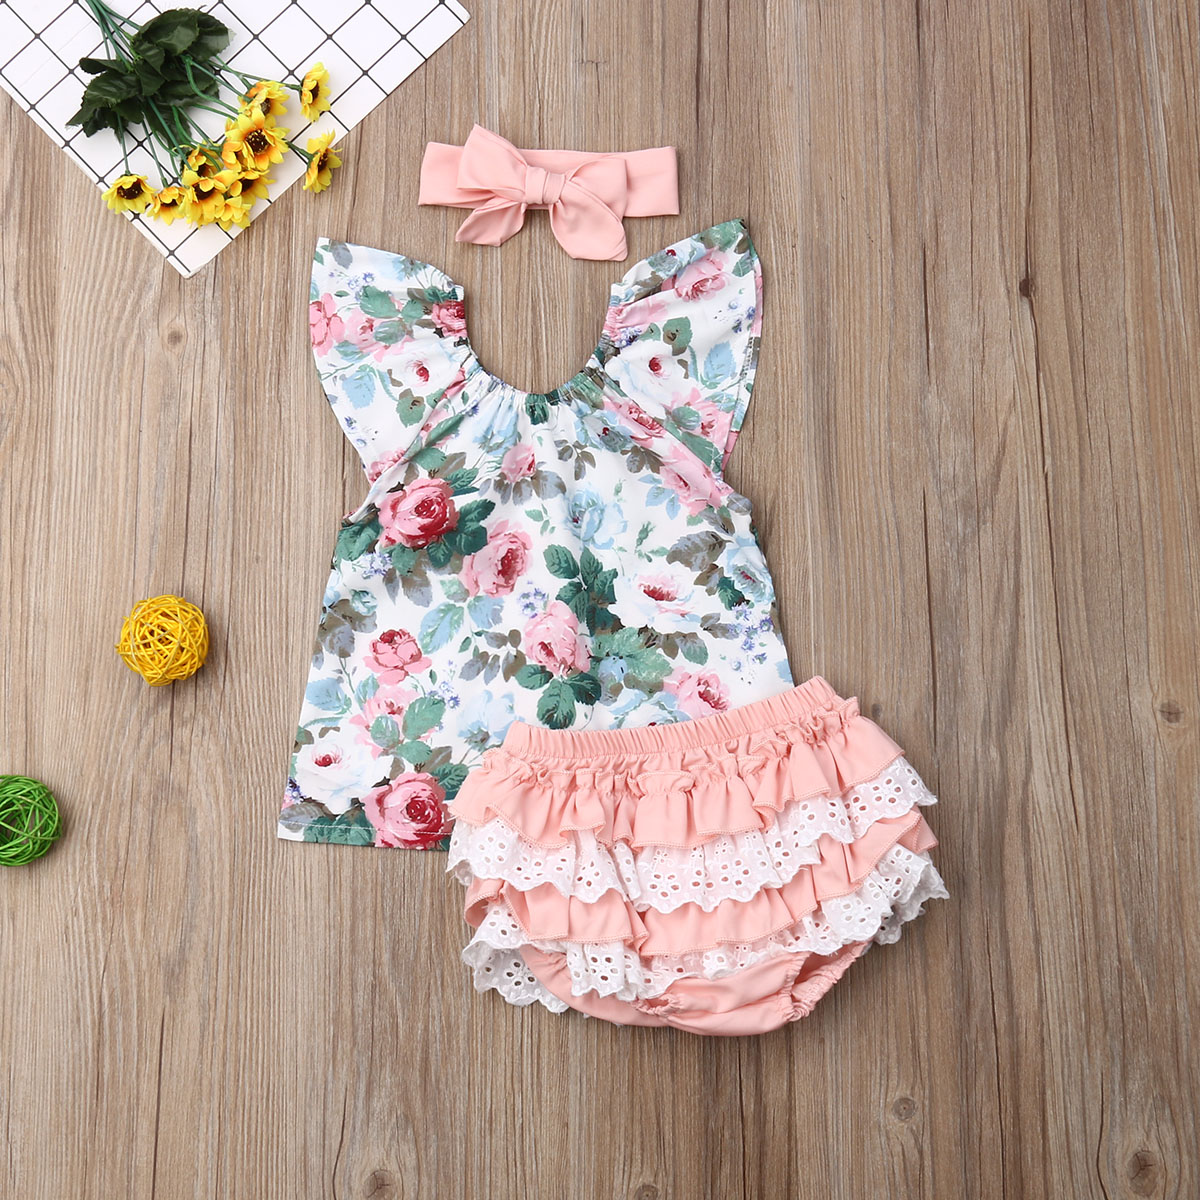 Pudcoco Summer Newborn Baby Girl Clothes Fly Sleeve Flower Print Tops Lace Ruffle PP Shorts Headband 3Pcs Outfits Clothes Summer